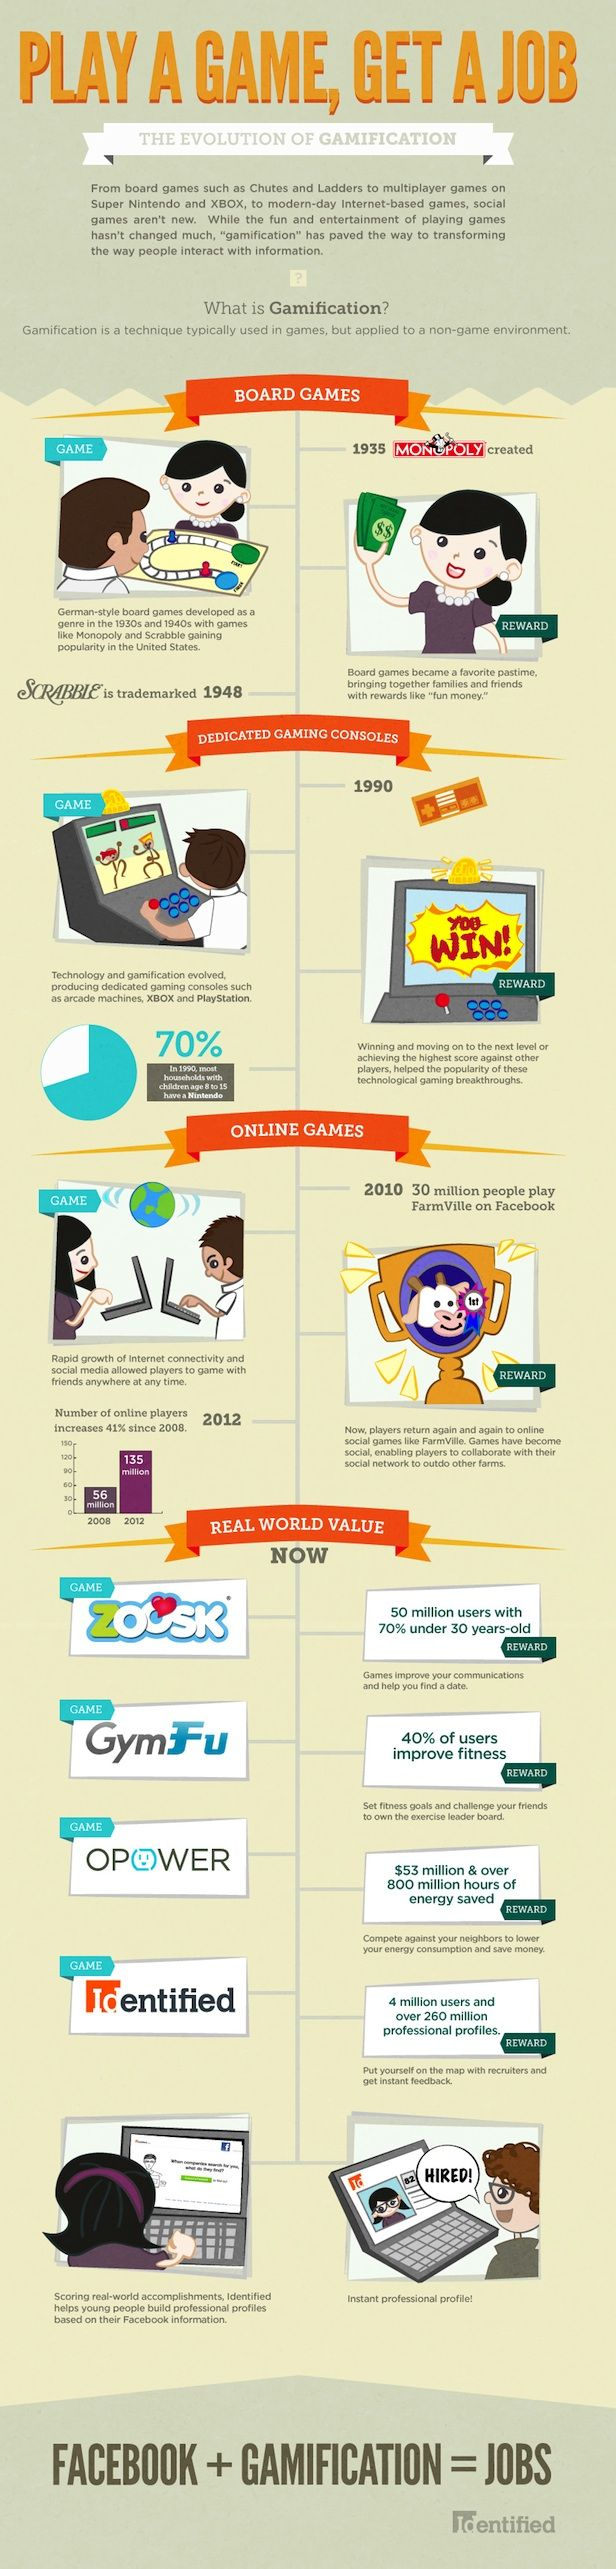 Gaming Your Way To A Job [Infographic]  -  found at http://www.webpronews.com/ gaming-to-job-2012-03